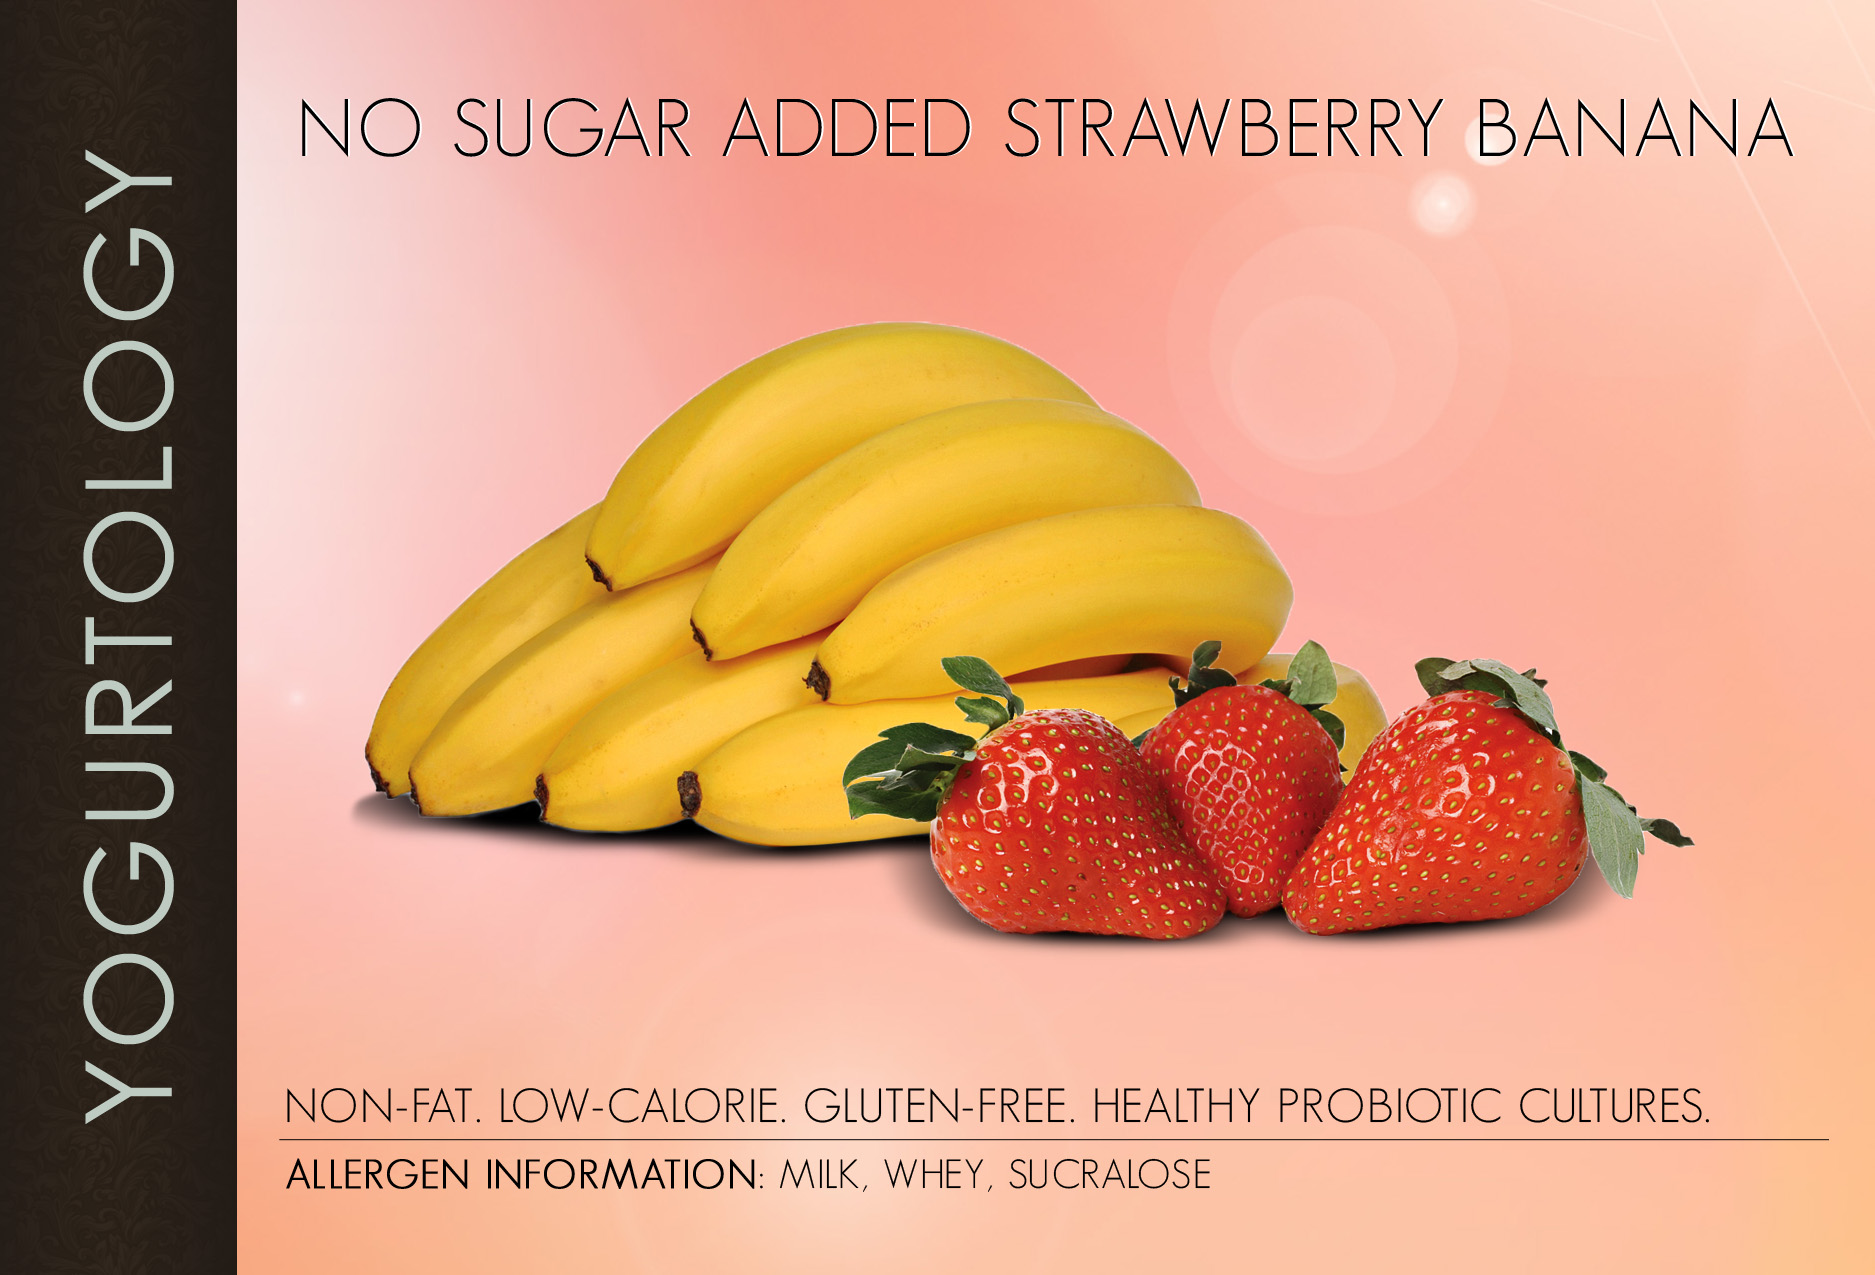 NSA Strawberry Banana